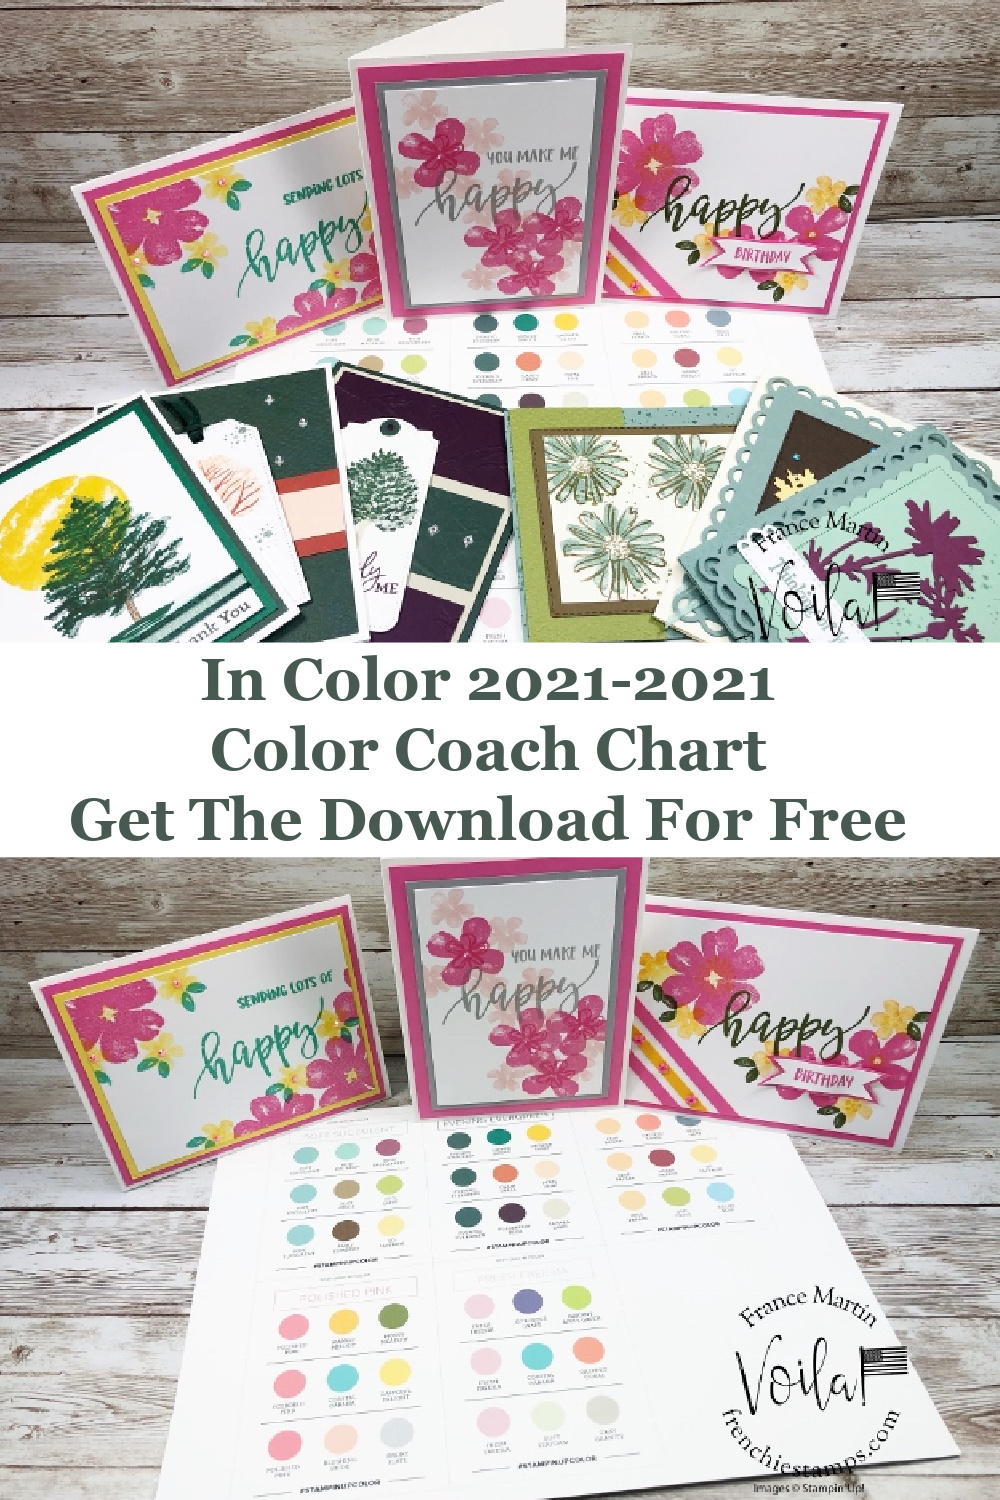 Stampin\' Up! Color Coach for 2021-2023 In-Color